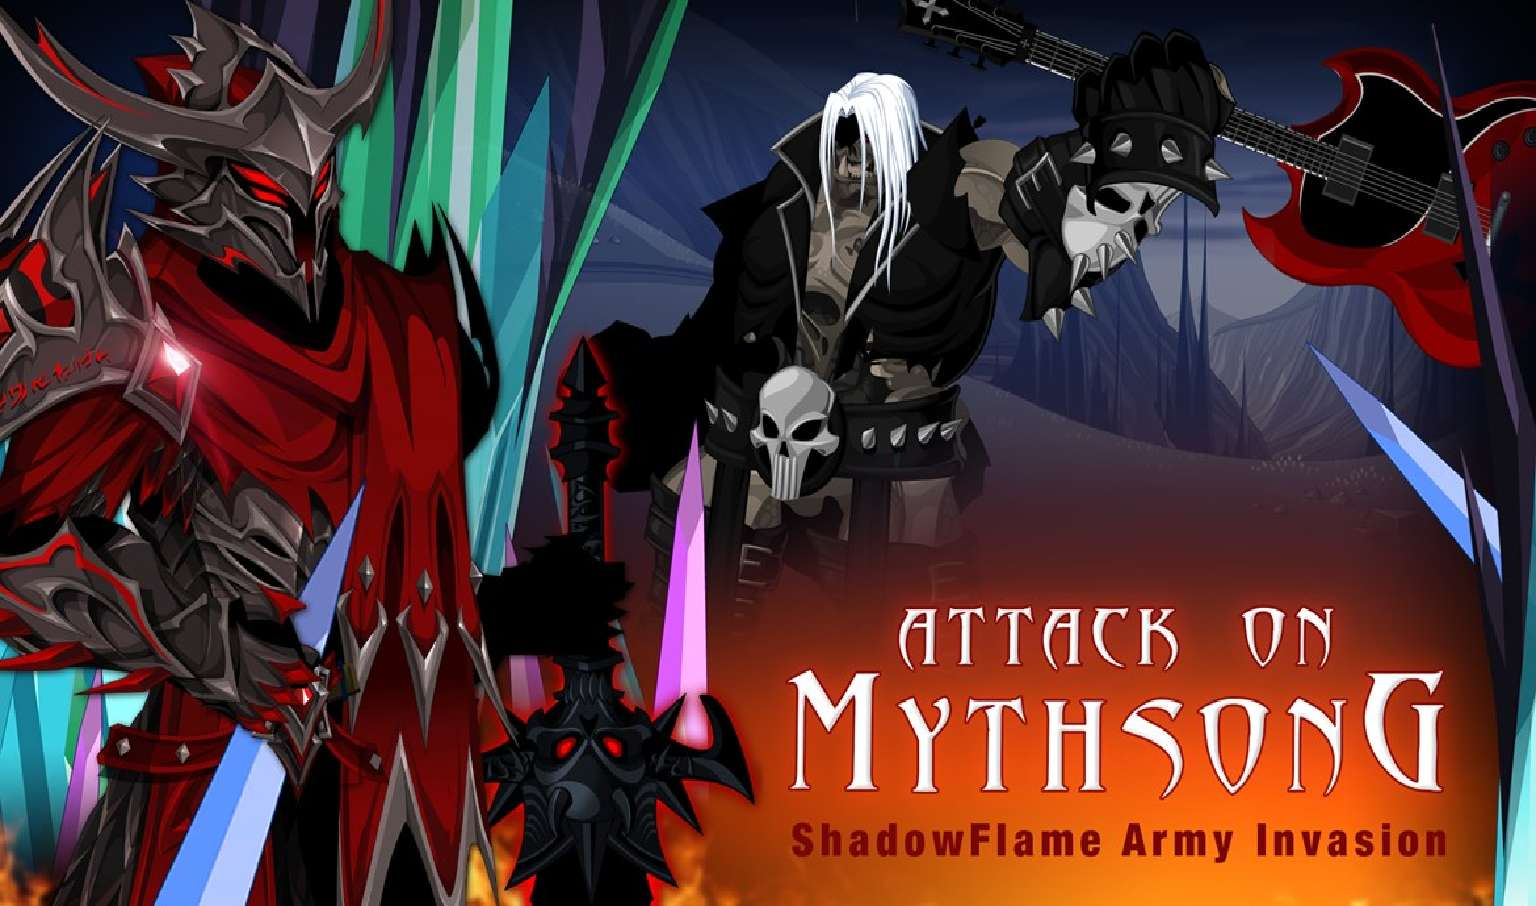 Mythsong Shadow War Creeps Into AdventureQuest Worlds For The First War Of February